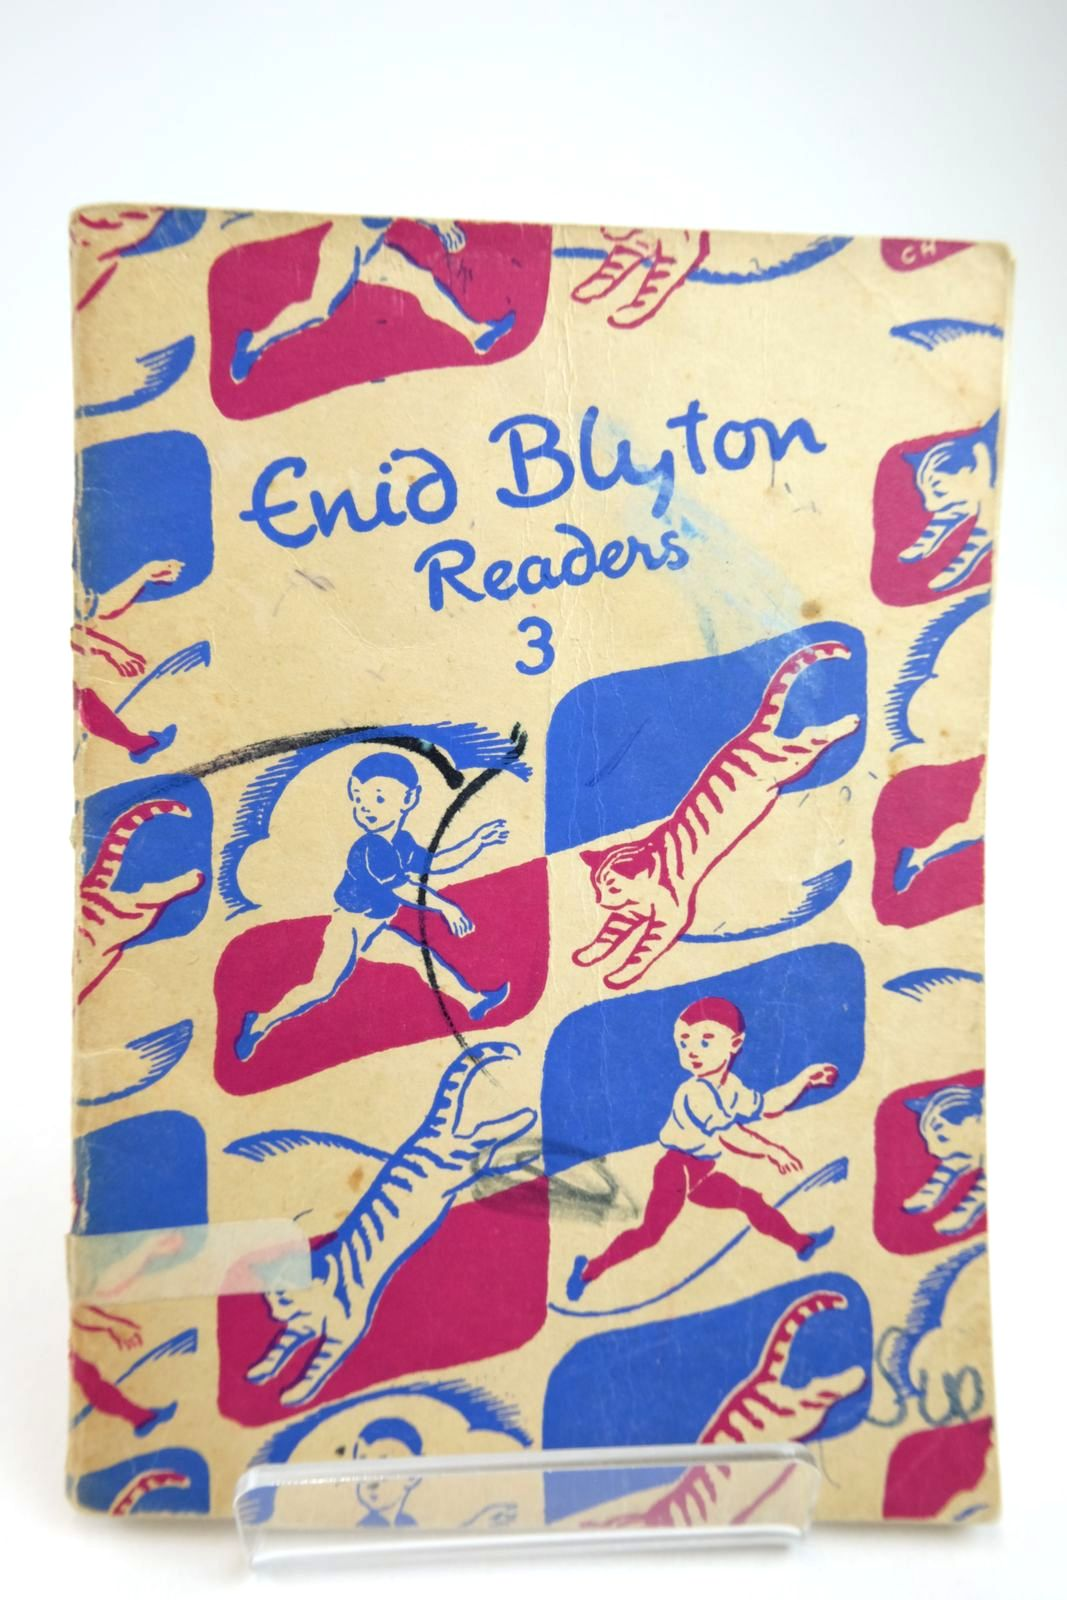 Photo of ENID BLYTON READERS 3 written by Blyton, Enid illustrated by Soper, Eileen published by Macmillan & Co. Ltd. (STOCK CODE: 2133407)  for sale by Stella & Rose's Books